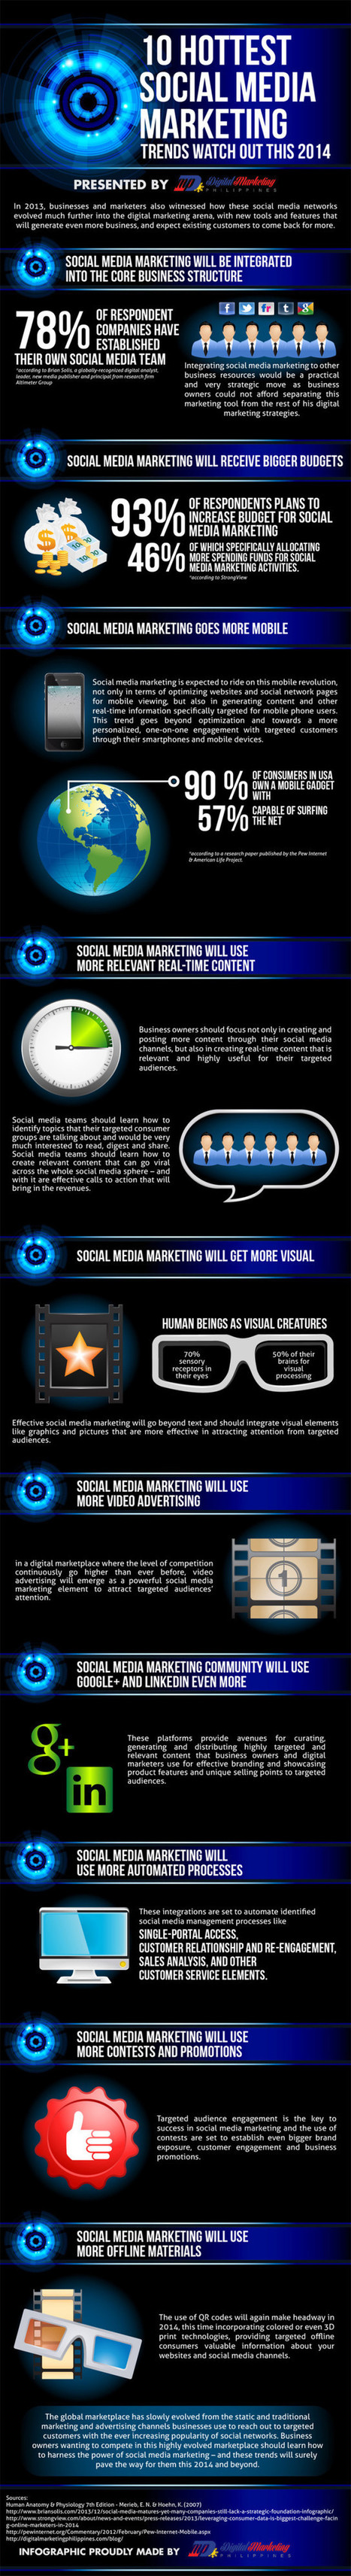 Infographic: 10 Hottest Trends in Social Media Marketing - Marketing Technology Blog | The #SocialMedia #Marketer | Scoop.it